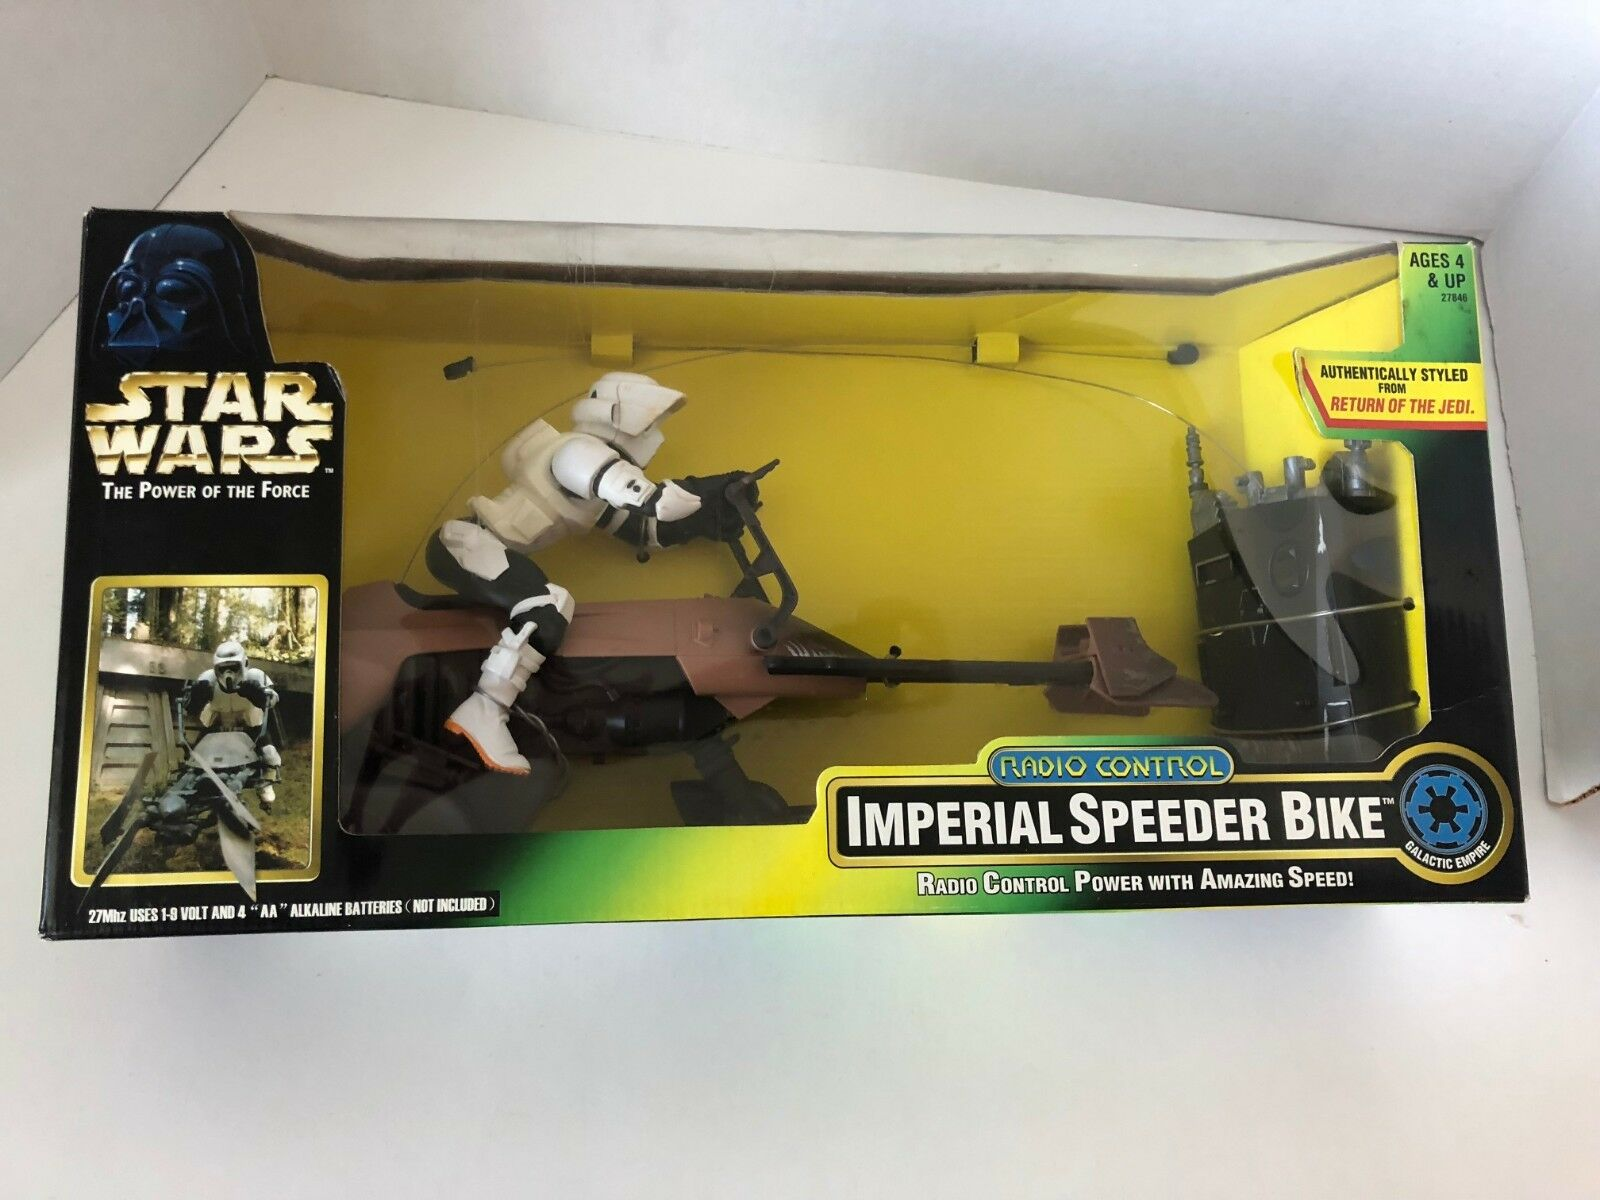 Star Wars IMPERIAL SPEEDER BIKE radio controller Kenner NEW